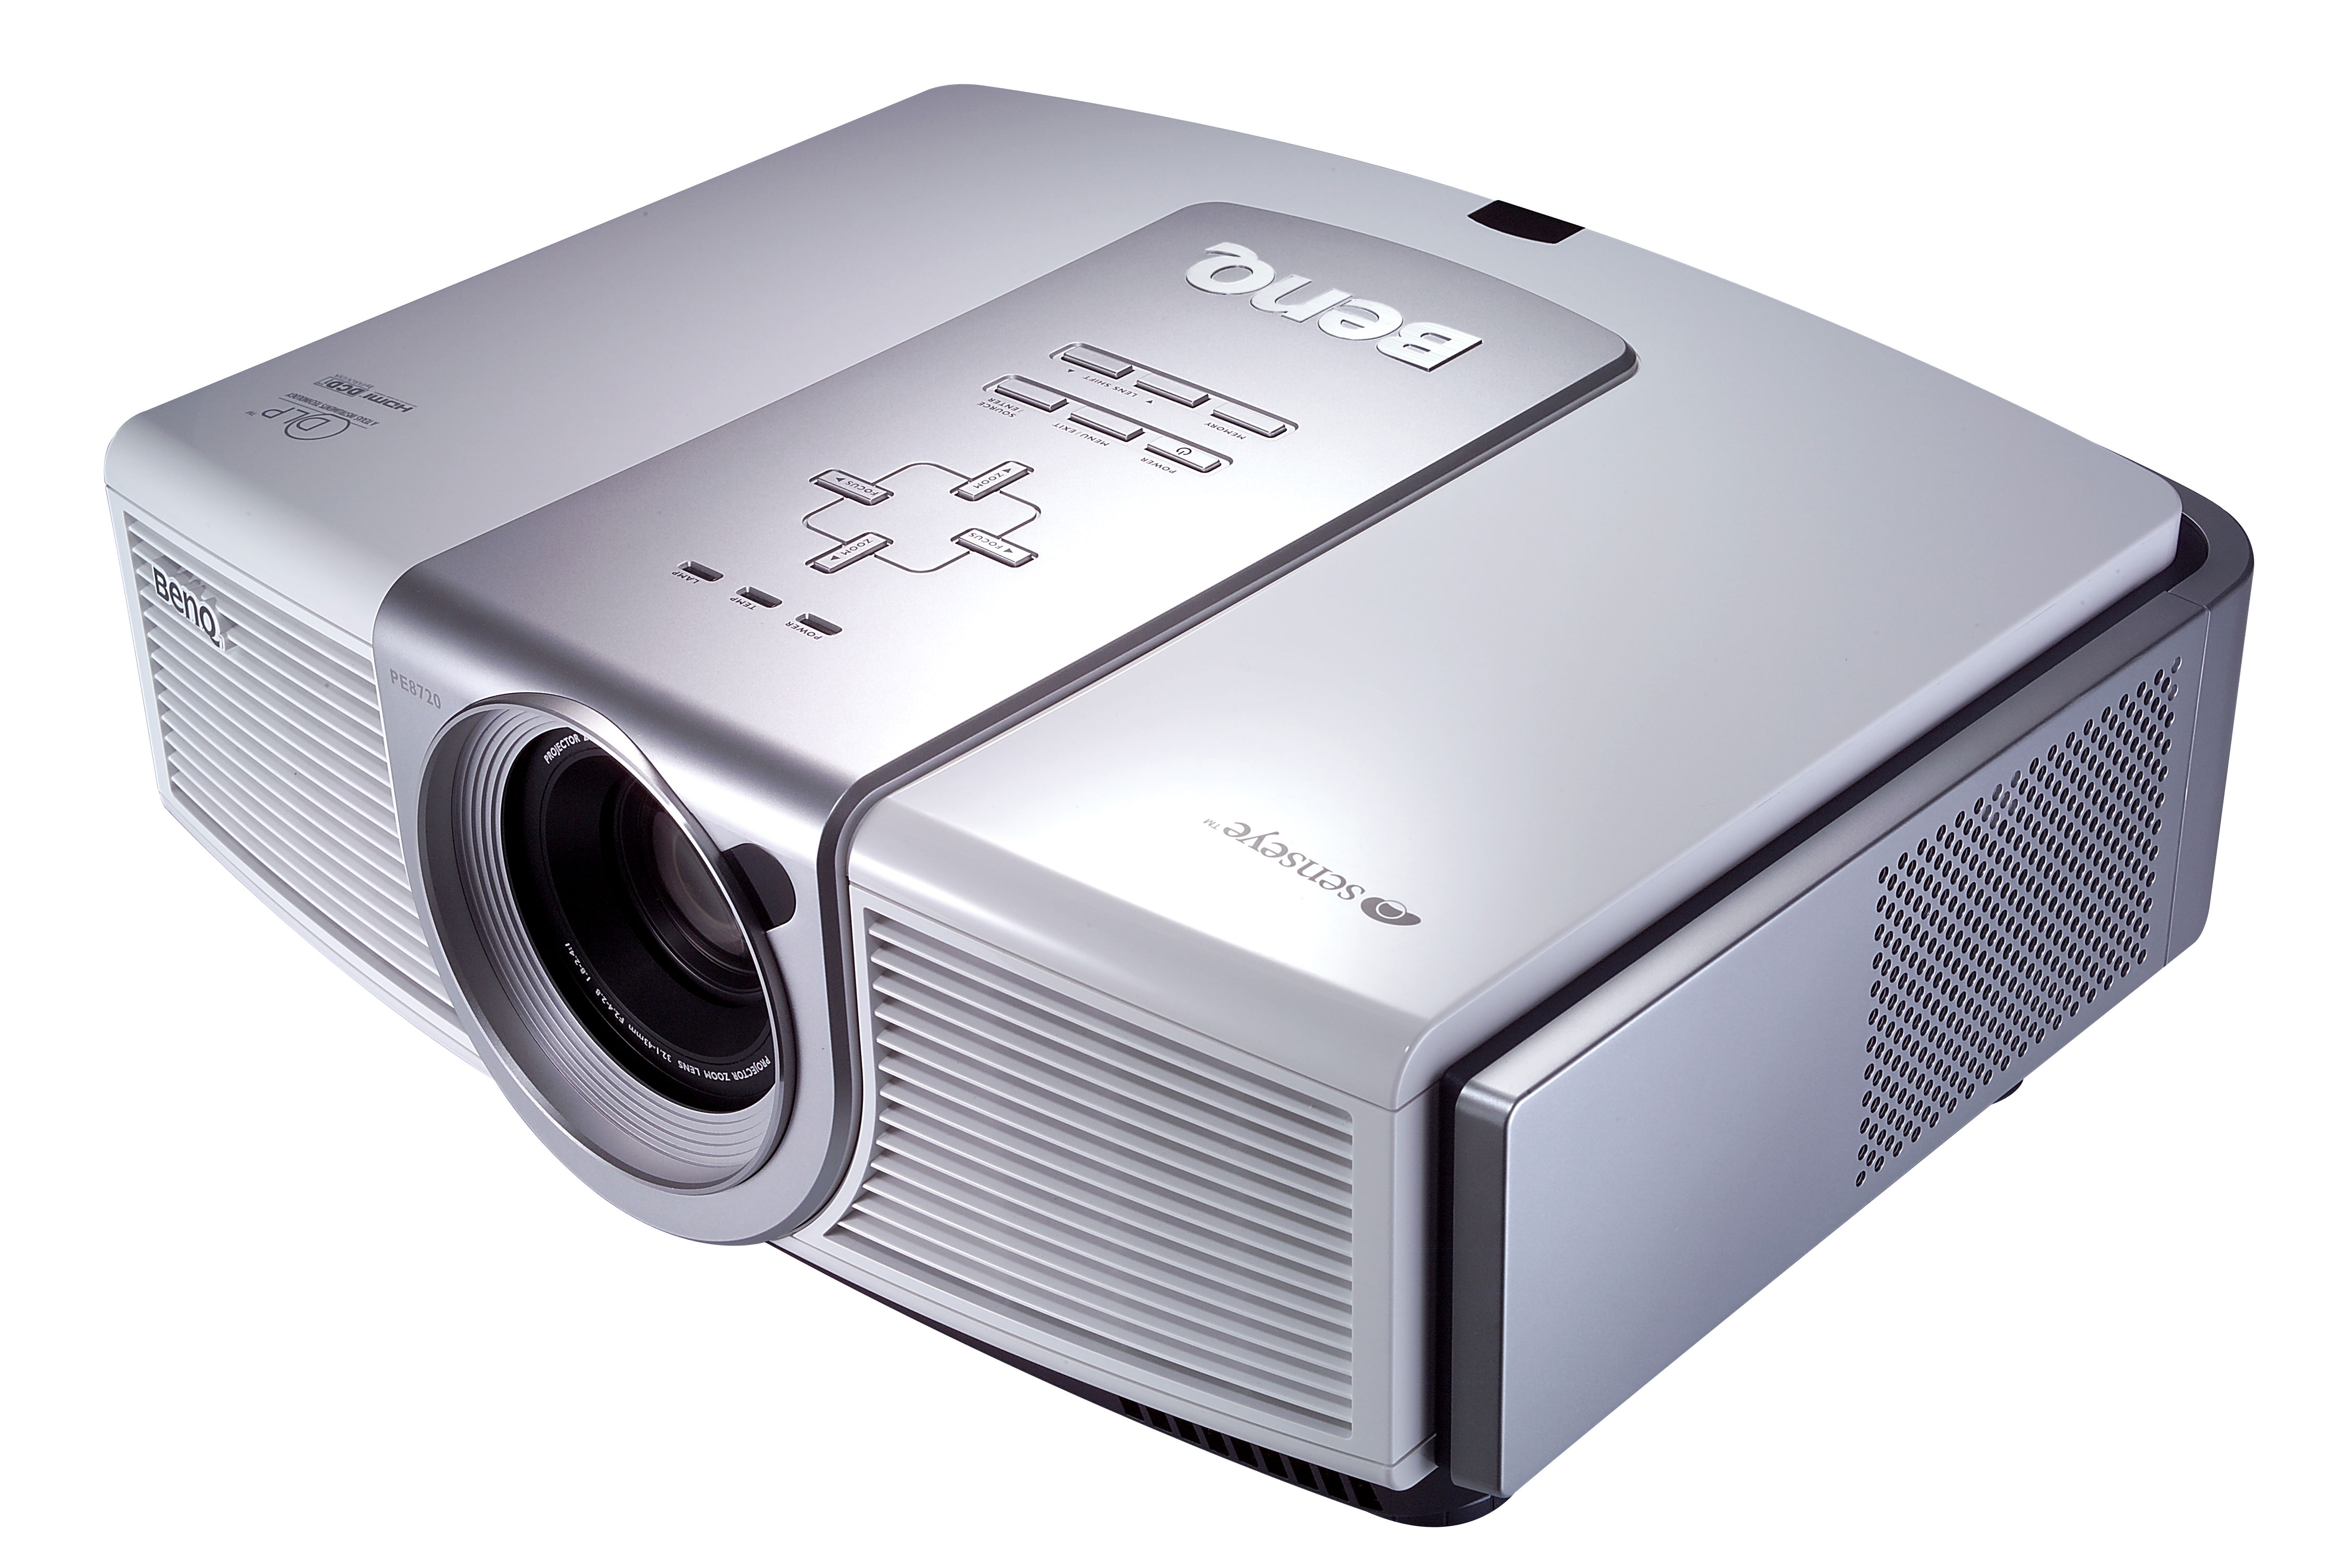 BENQ PE8720 DRIVERS FOR WINDOWS DOWNLOAD